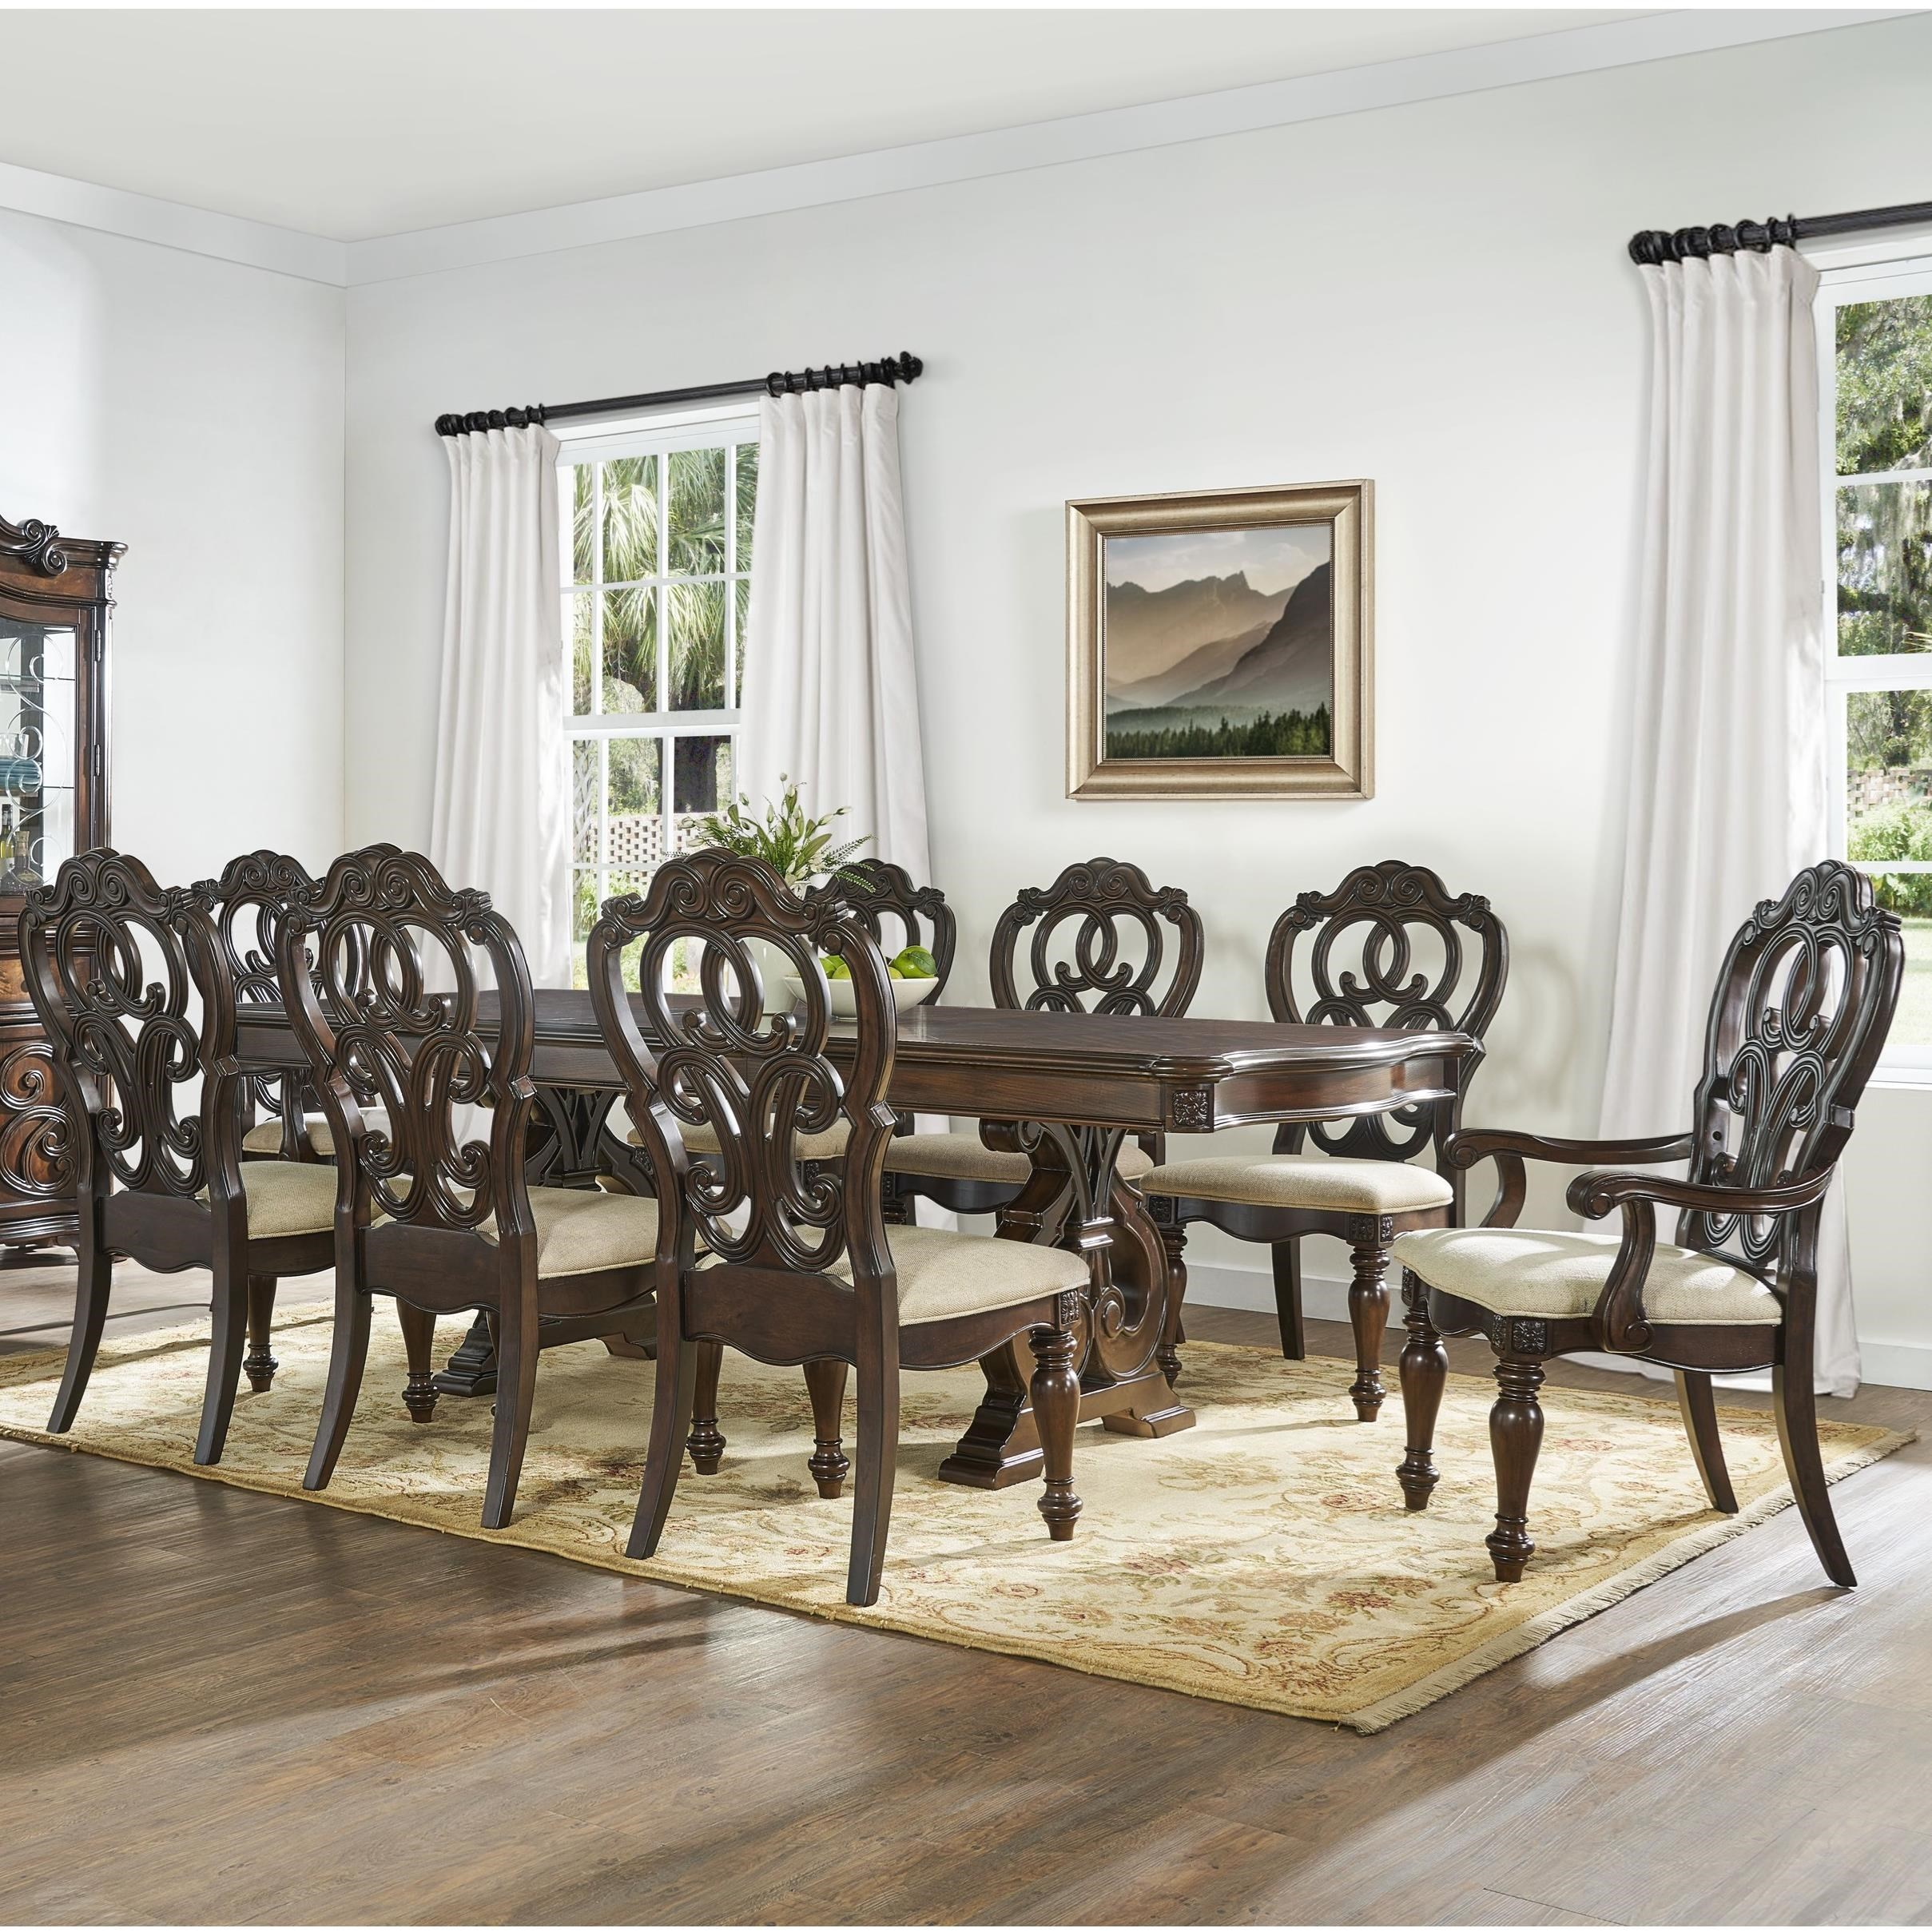 Royale 9 Piece Dining Set by Steve Silver at Northeast Factory Direct